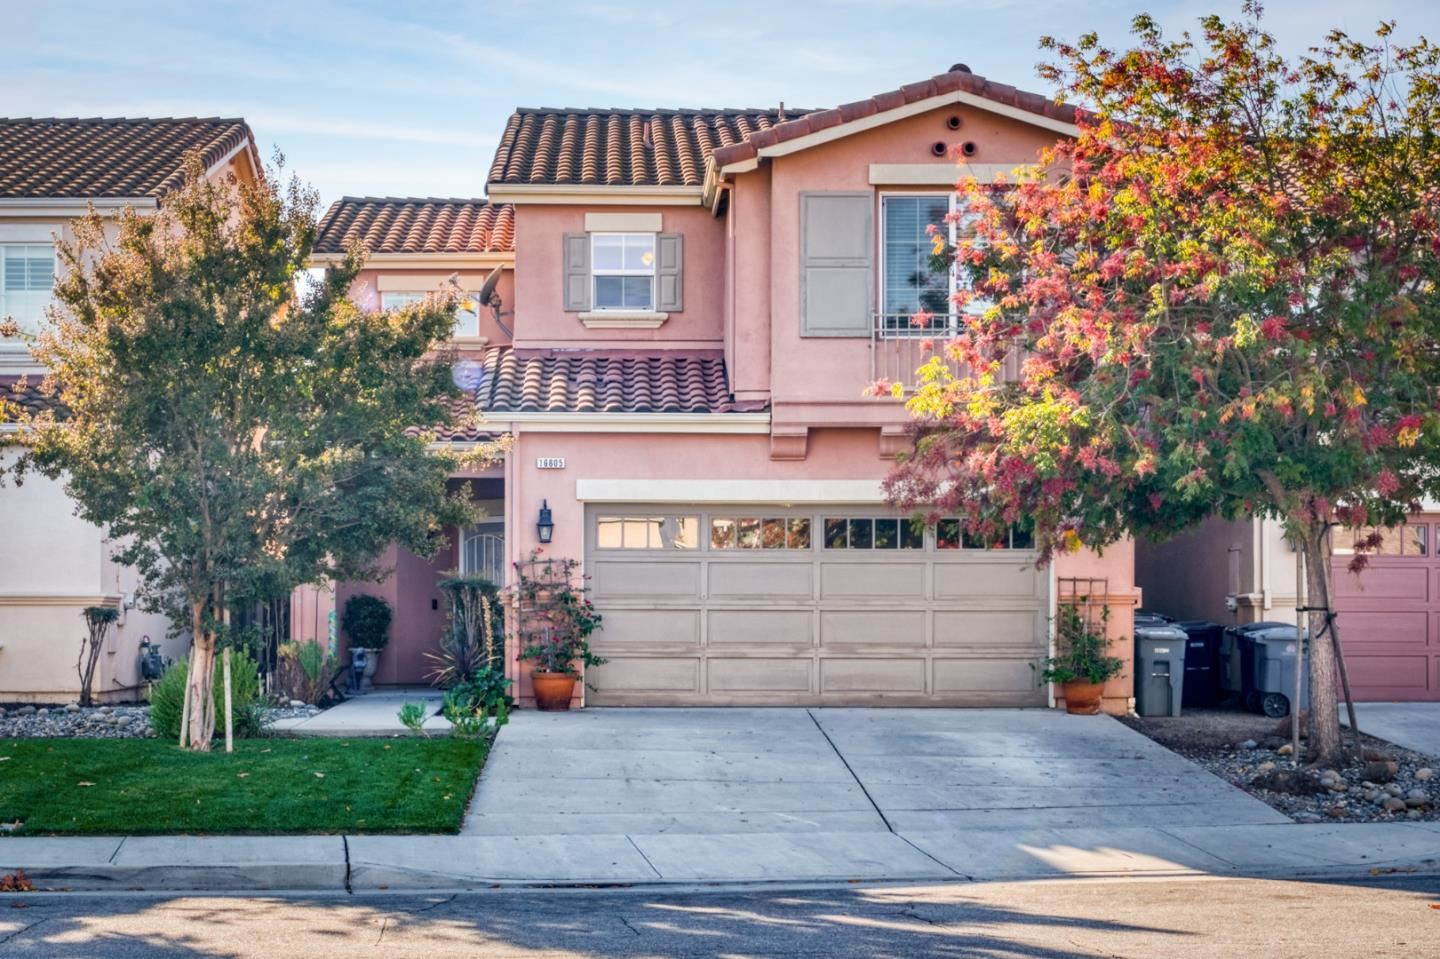 Photo for 16805 Cory DR, MORGAN HILL, CA 95037 (MLS # ML81820653)